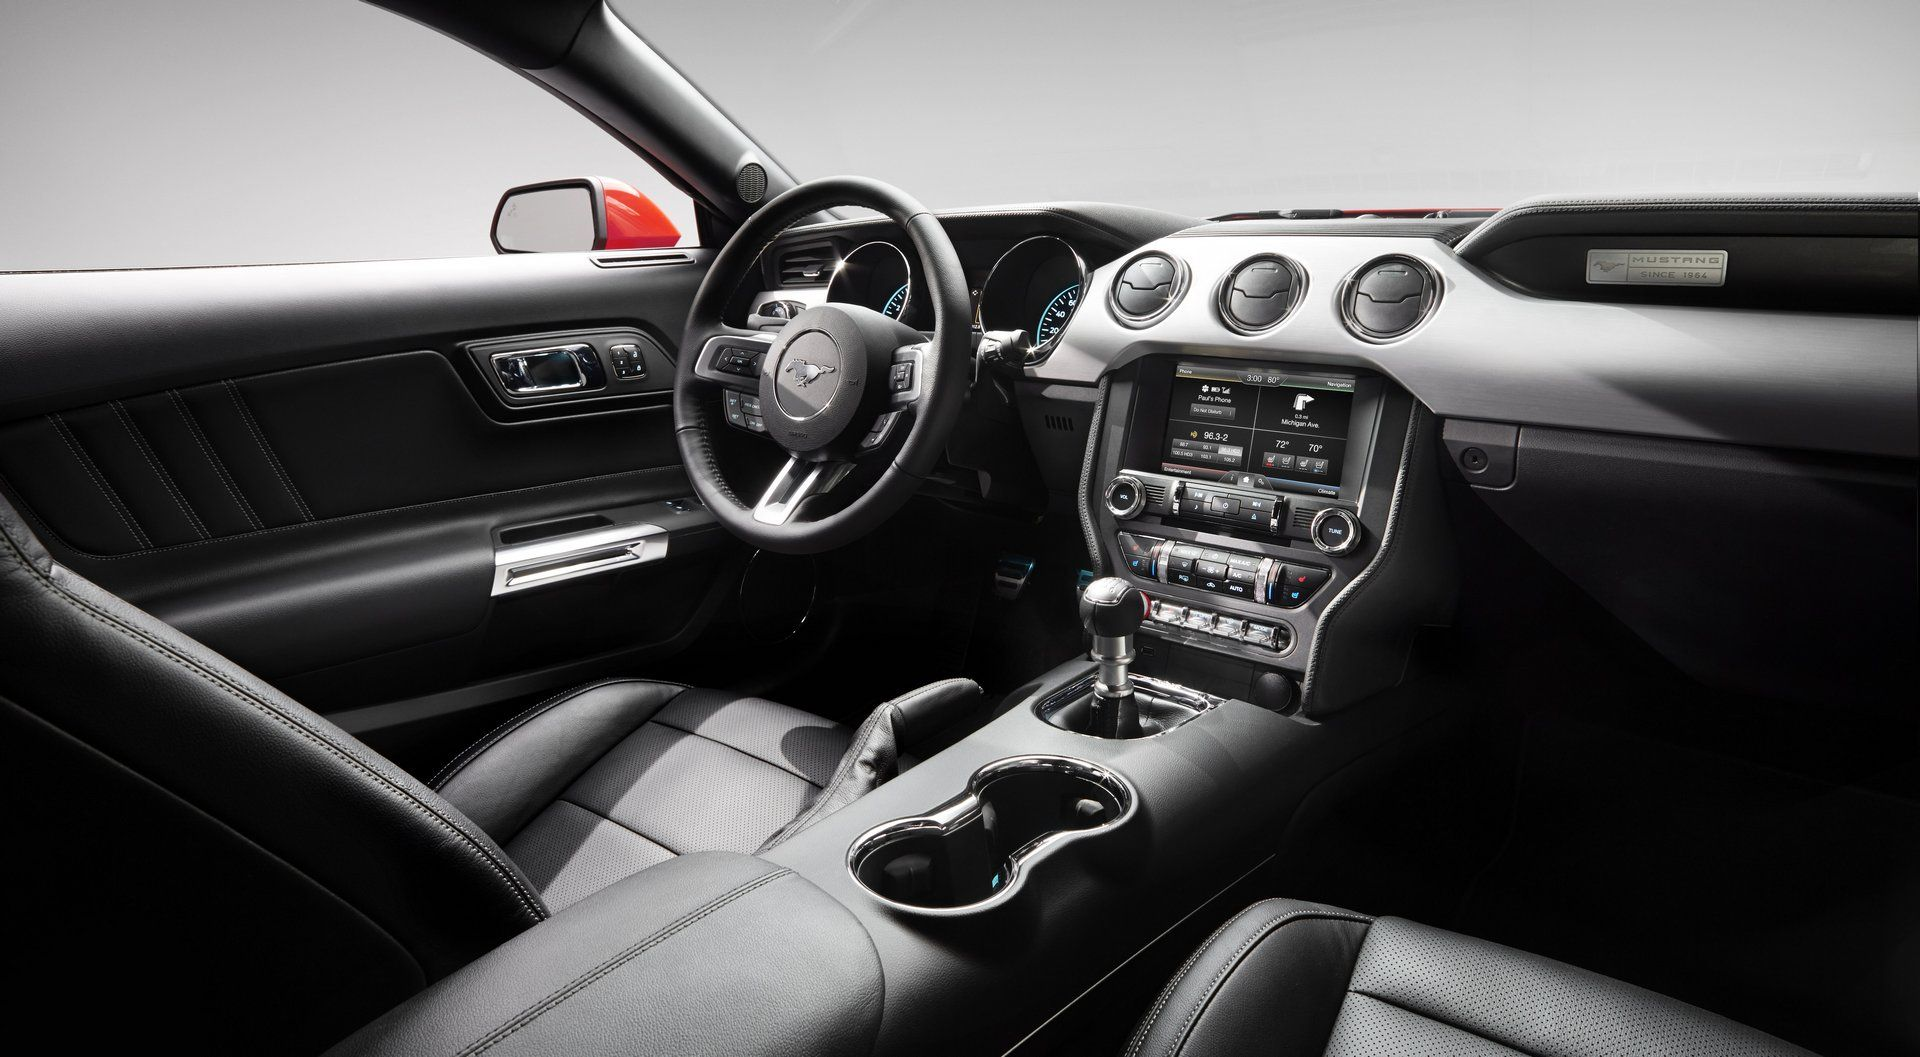 2020 Ford Mustang Review Pricing And Specs Ford Mustang Models